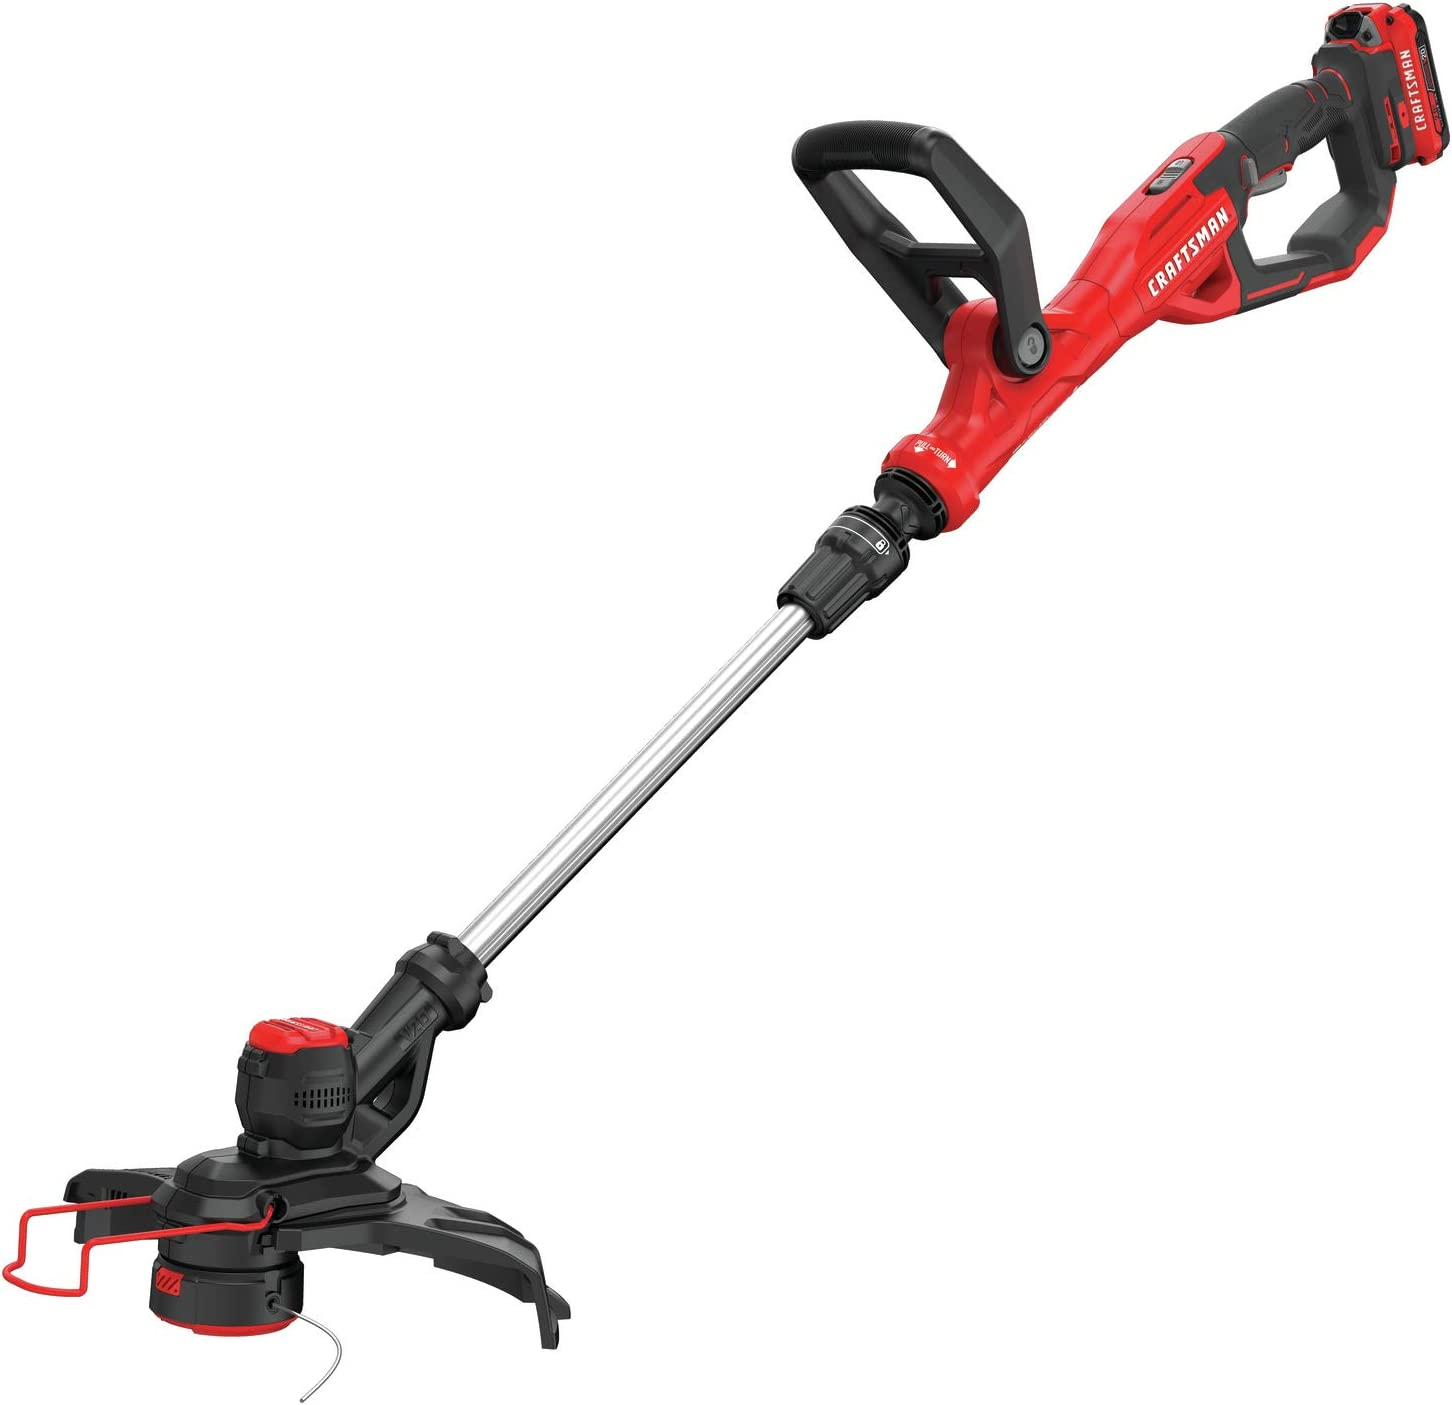 Troy-Bilt CORE TB4400 40V 22-Inch Cordless Hedge Trimmer Kit